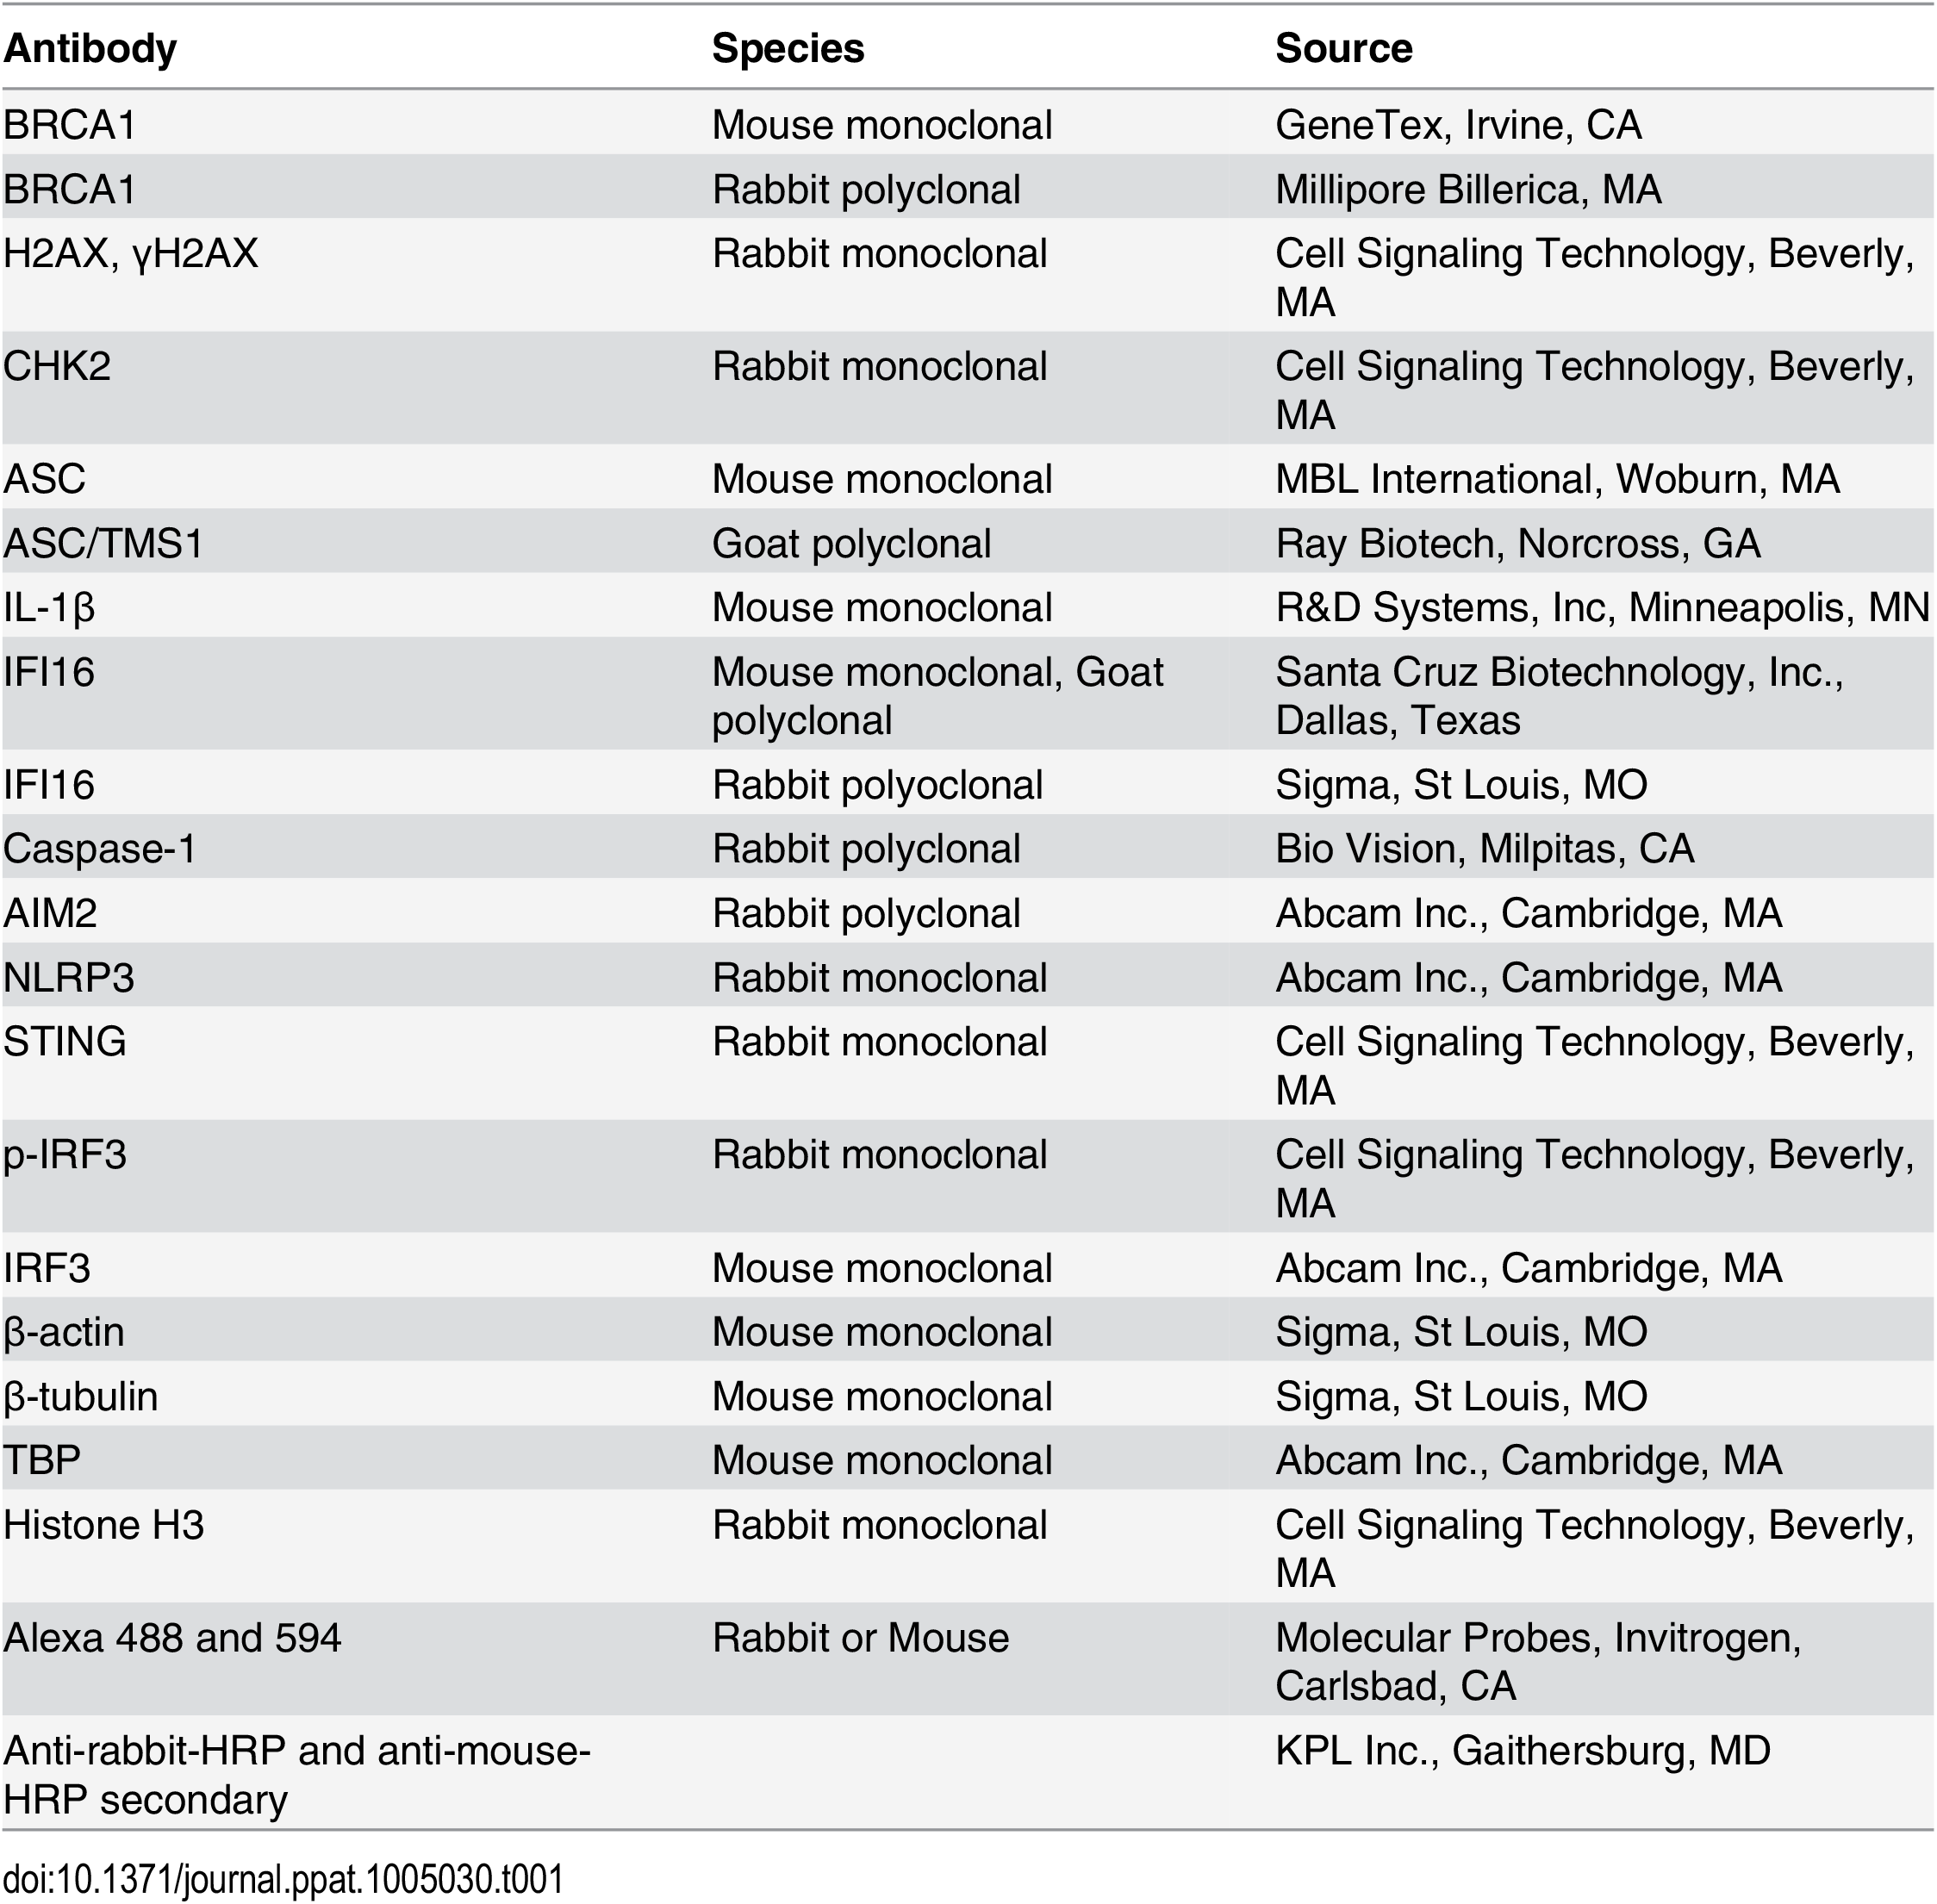 List of antibodies used in this study.